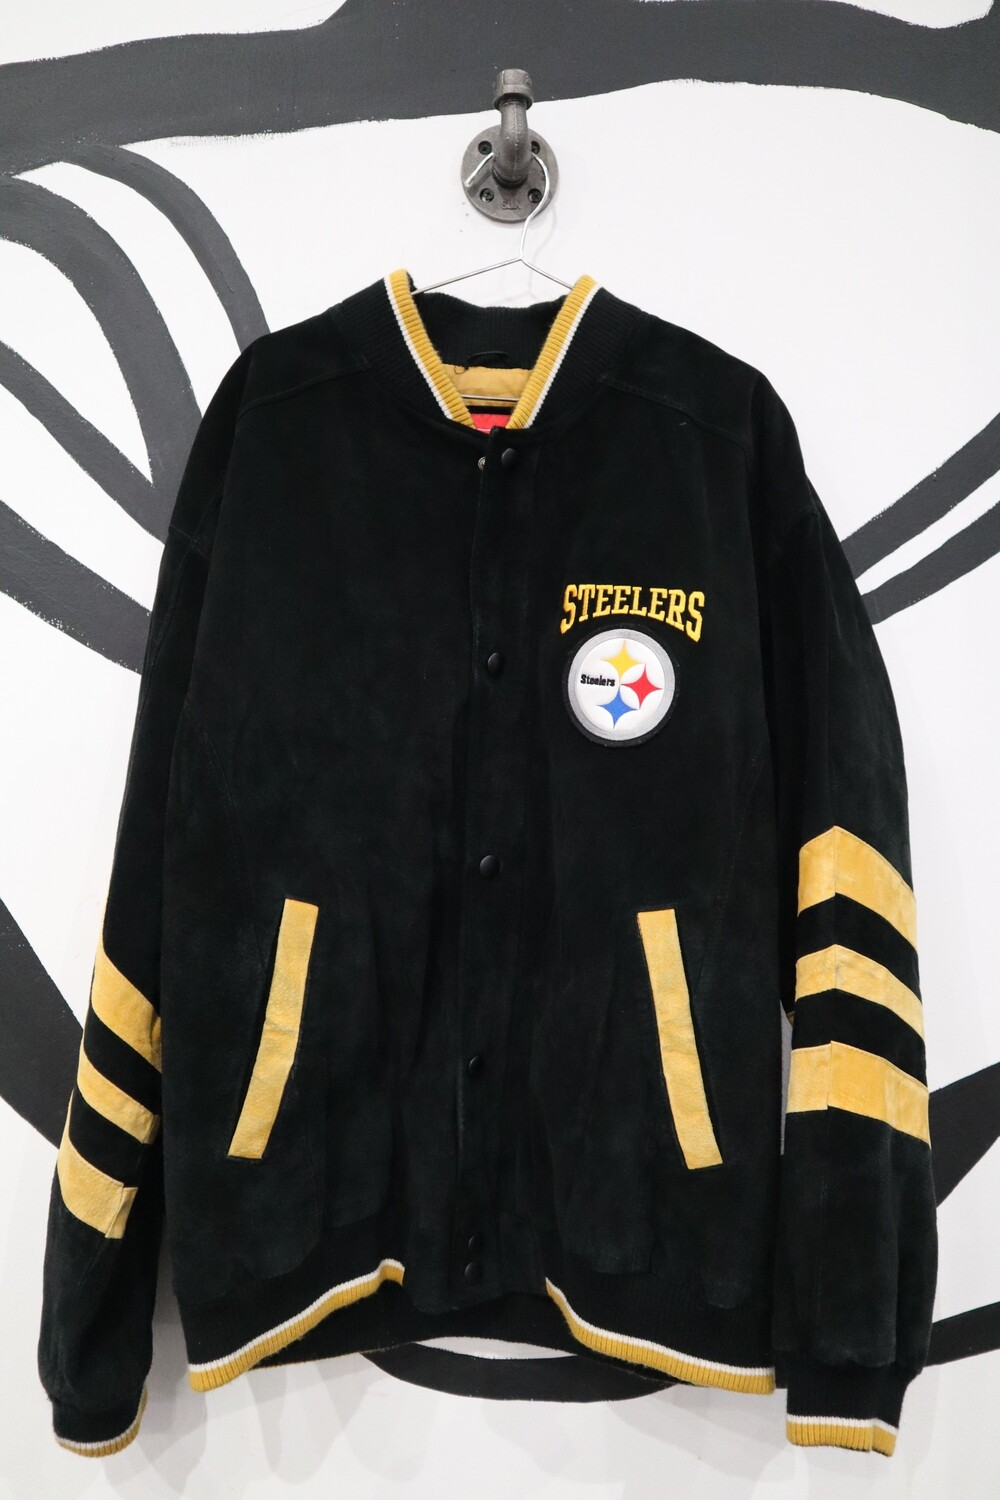 Steelers Suede Team Bomber Jacket - Men's XL